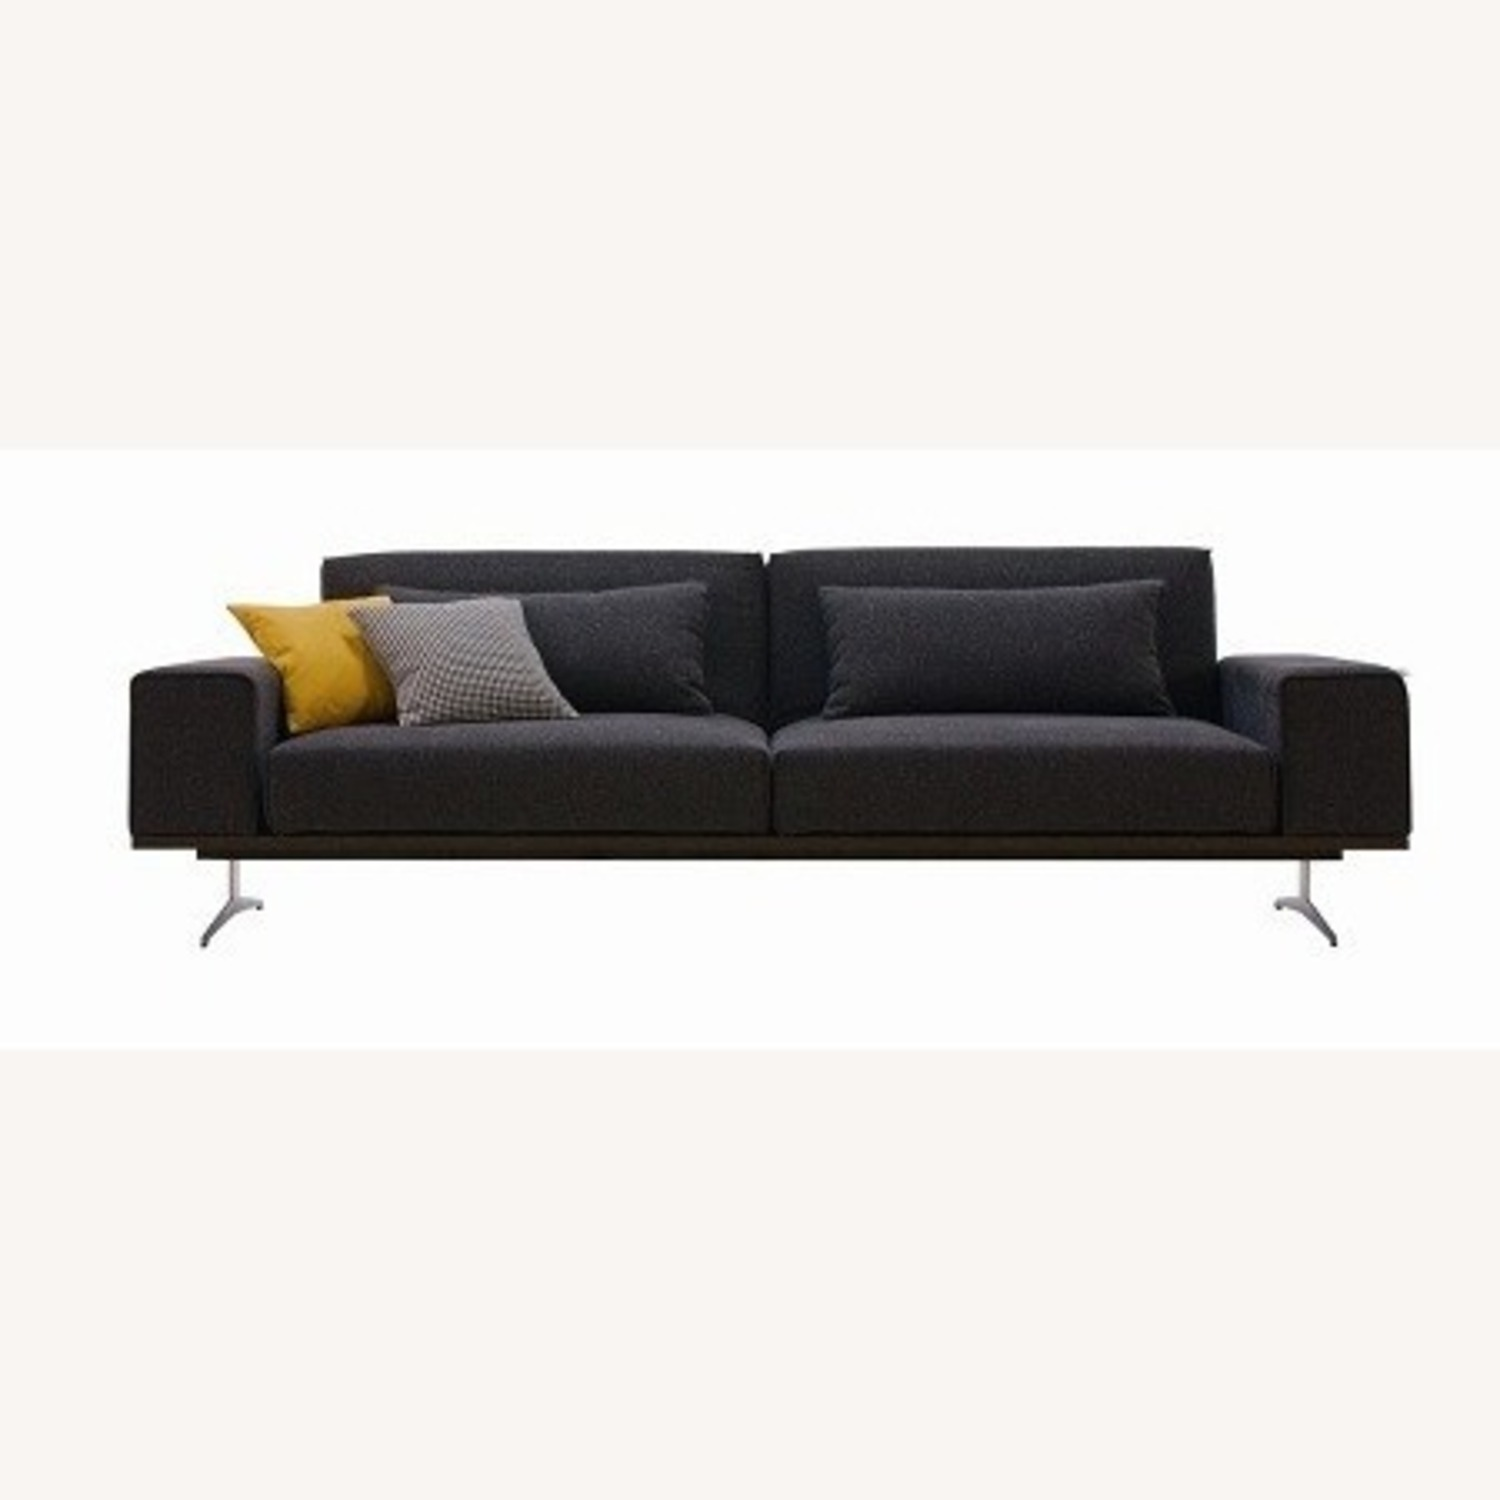 Wide Sofa Bed In Black Fabric Upholstery - image-0